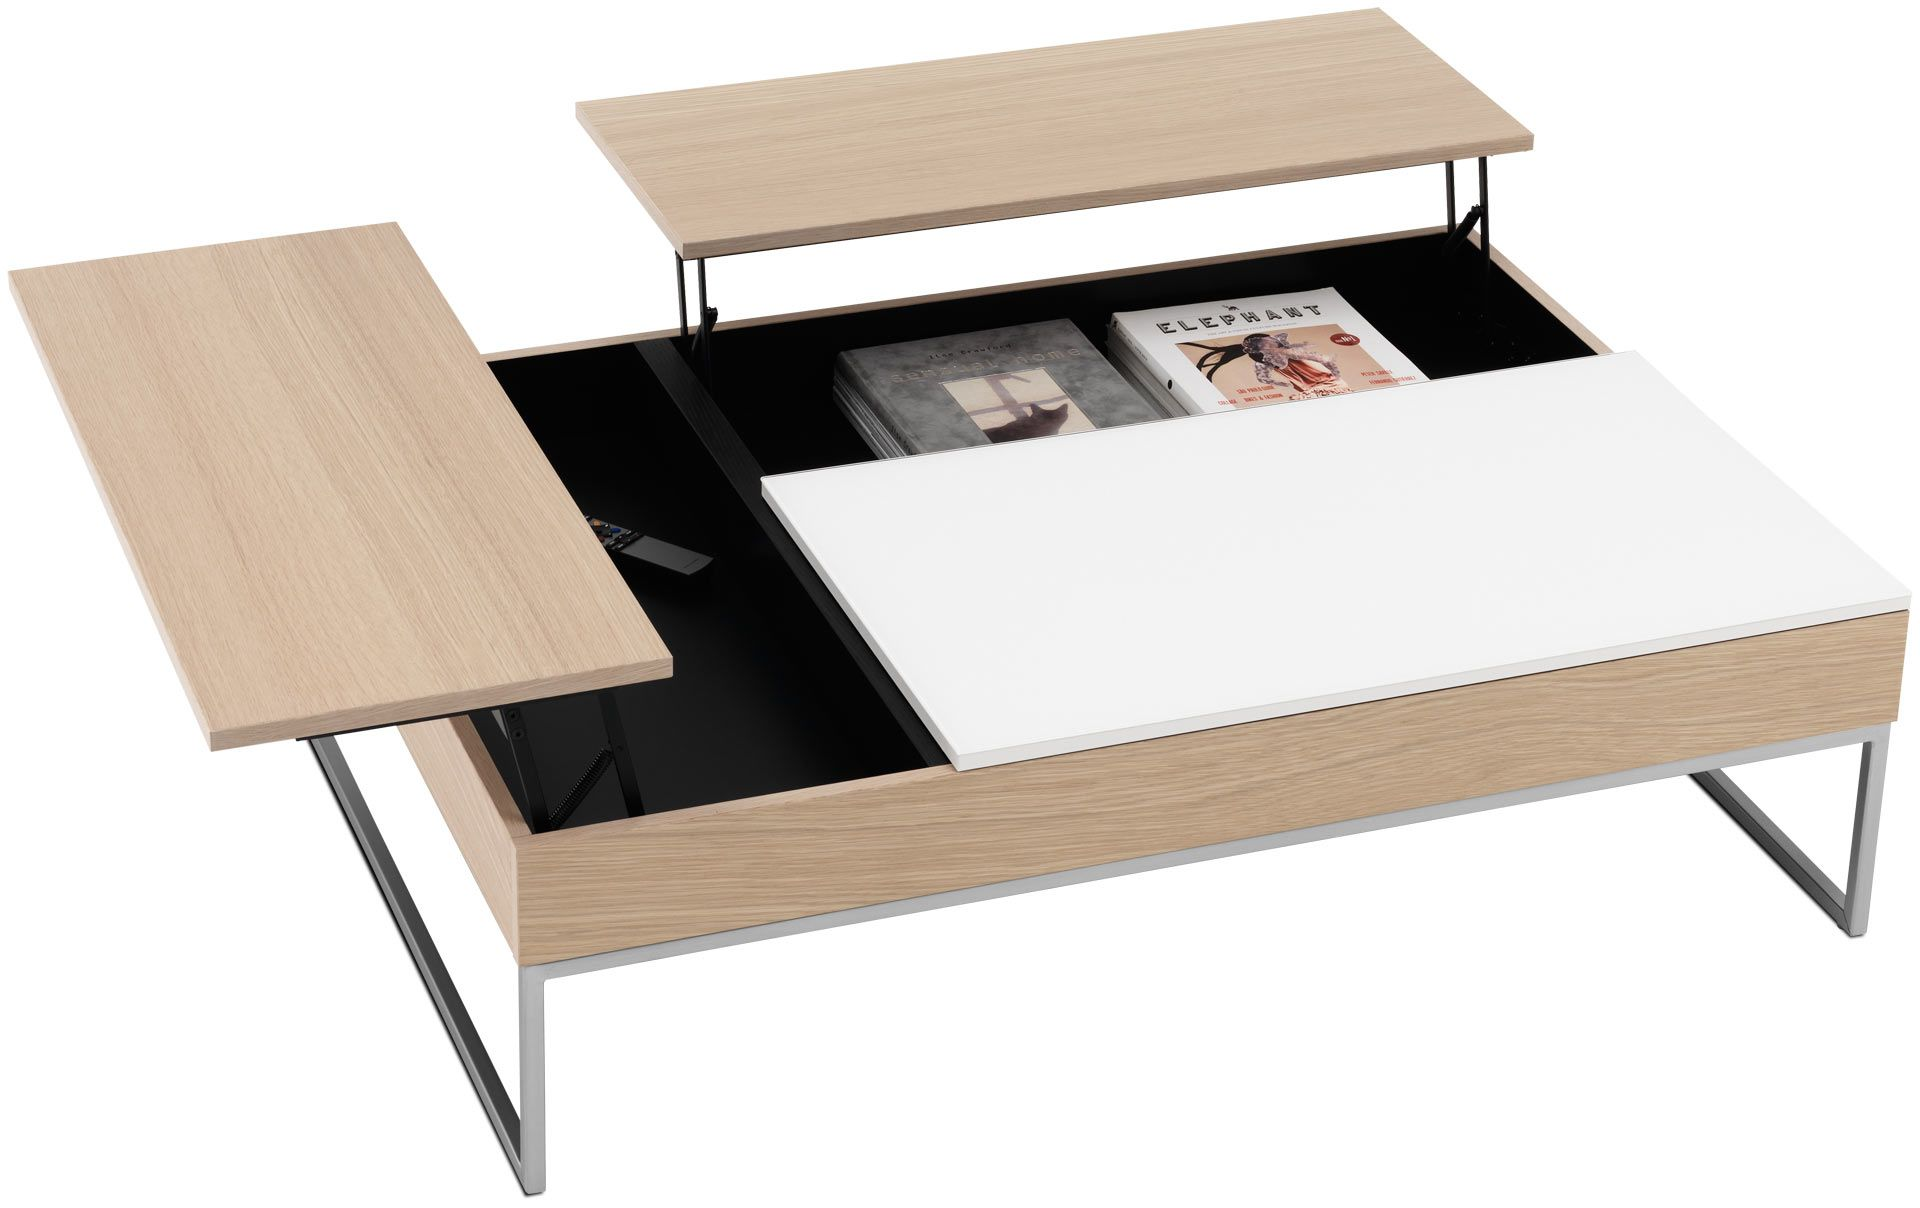 Tables Basses Design Pour Votre Salon Boconcept Avec Images Table Basse Contemporaine